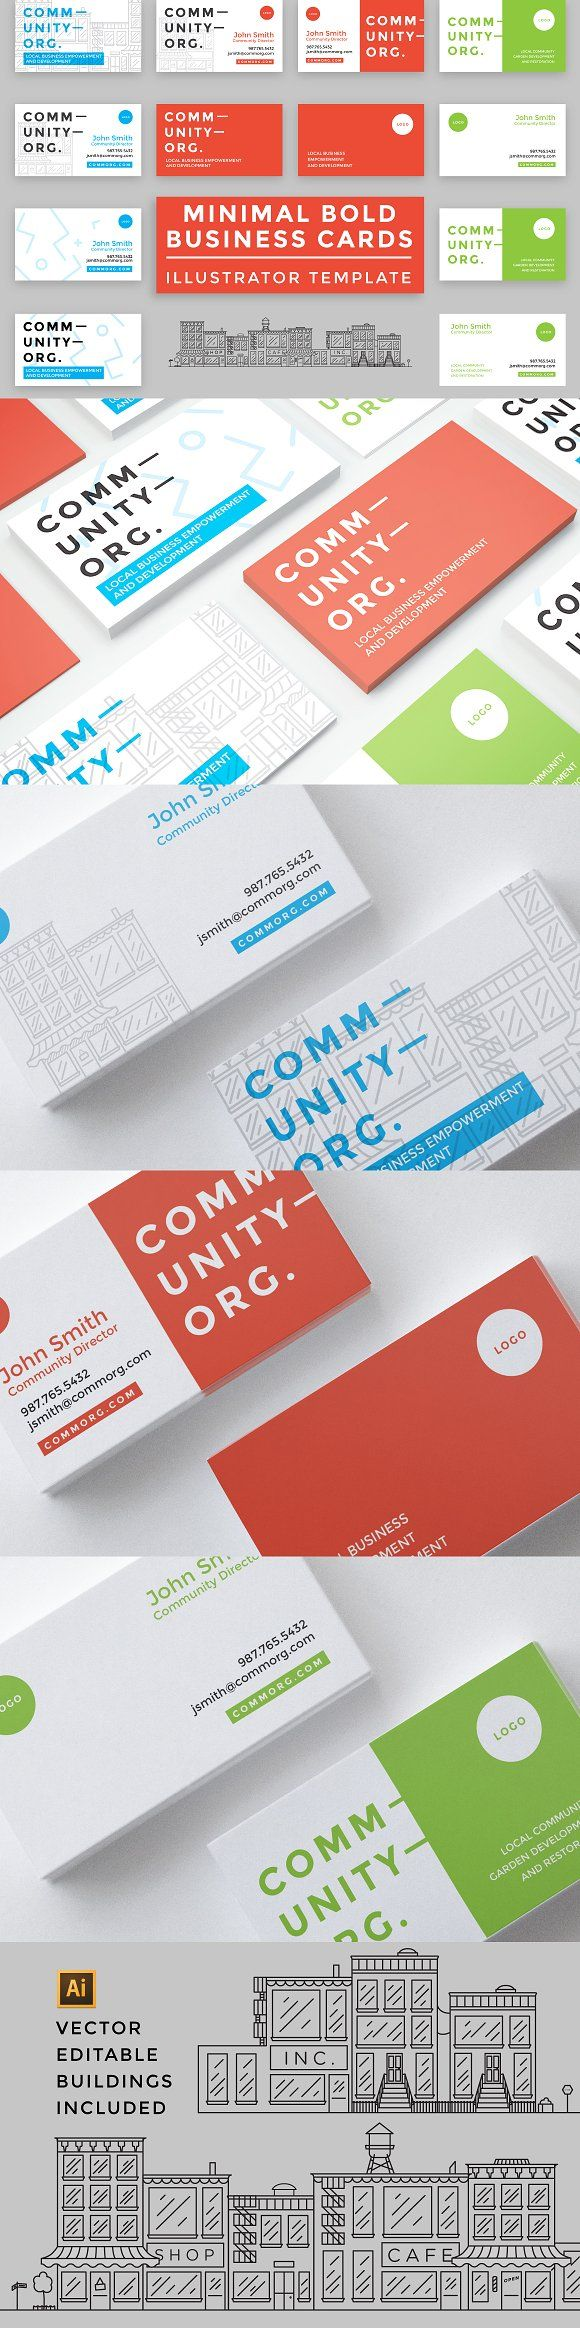 10 Minimal Bold Business Cards | Business cards, Business and Card ...